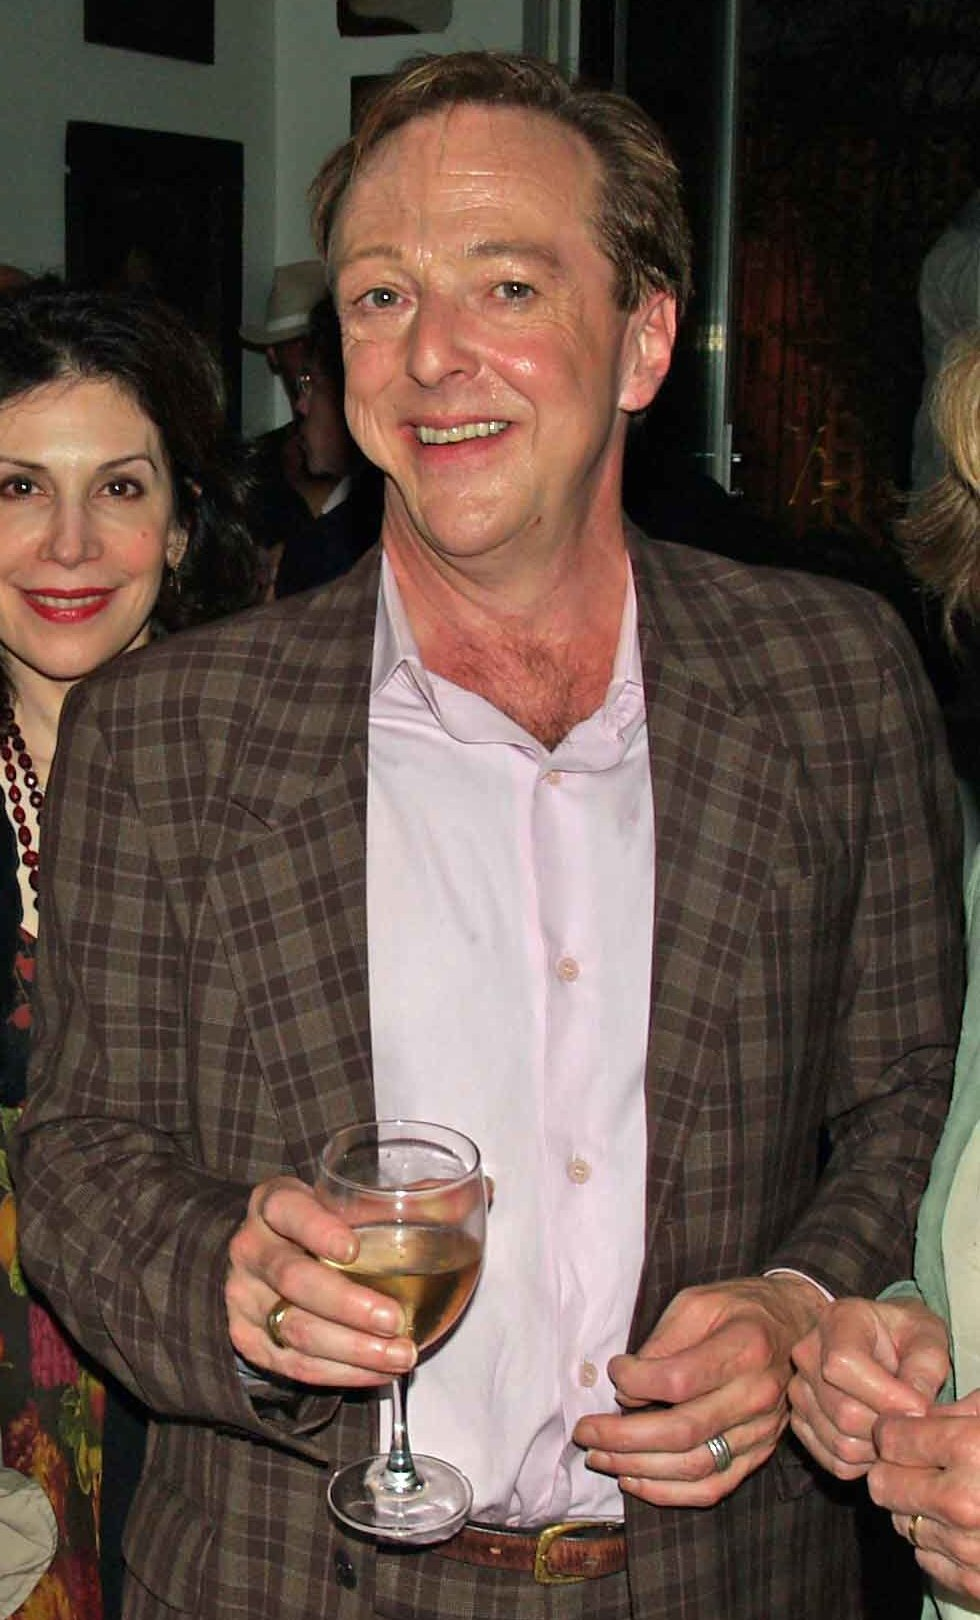 Edward Hibbert Phone number, Email Id, Fanmail, Instagram, Tiktok, and Contact Details